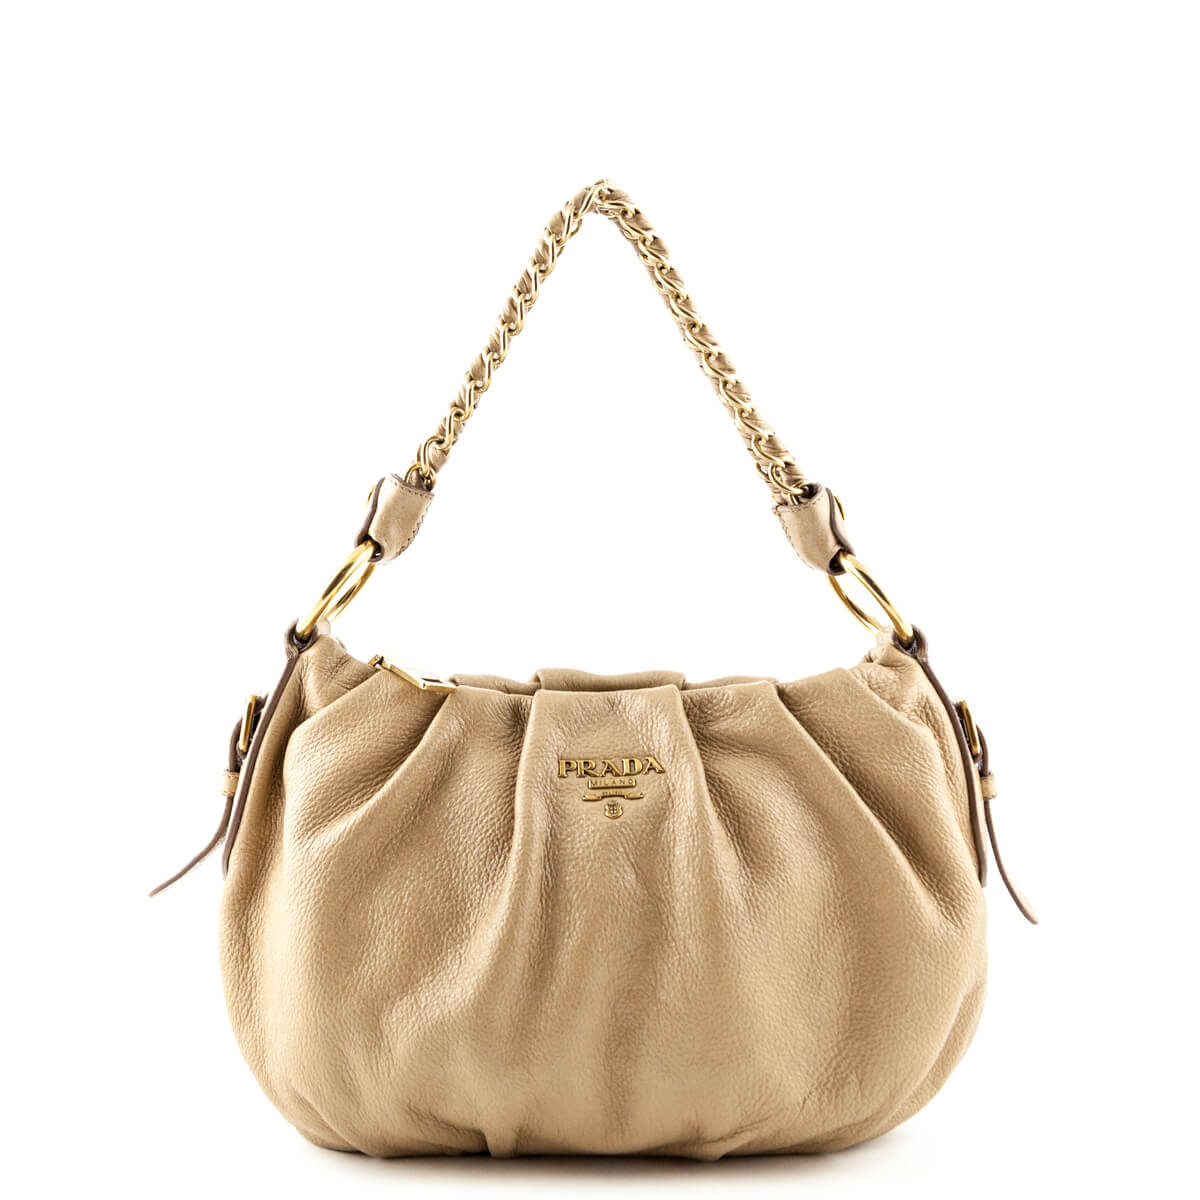 fc4f0ee68a04 Prada Tan Sparkly Nappa Leather Chain Shoulder Bag - LOVE that BAG -  Preowned Authentic Designer ...